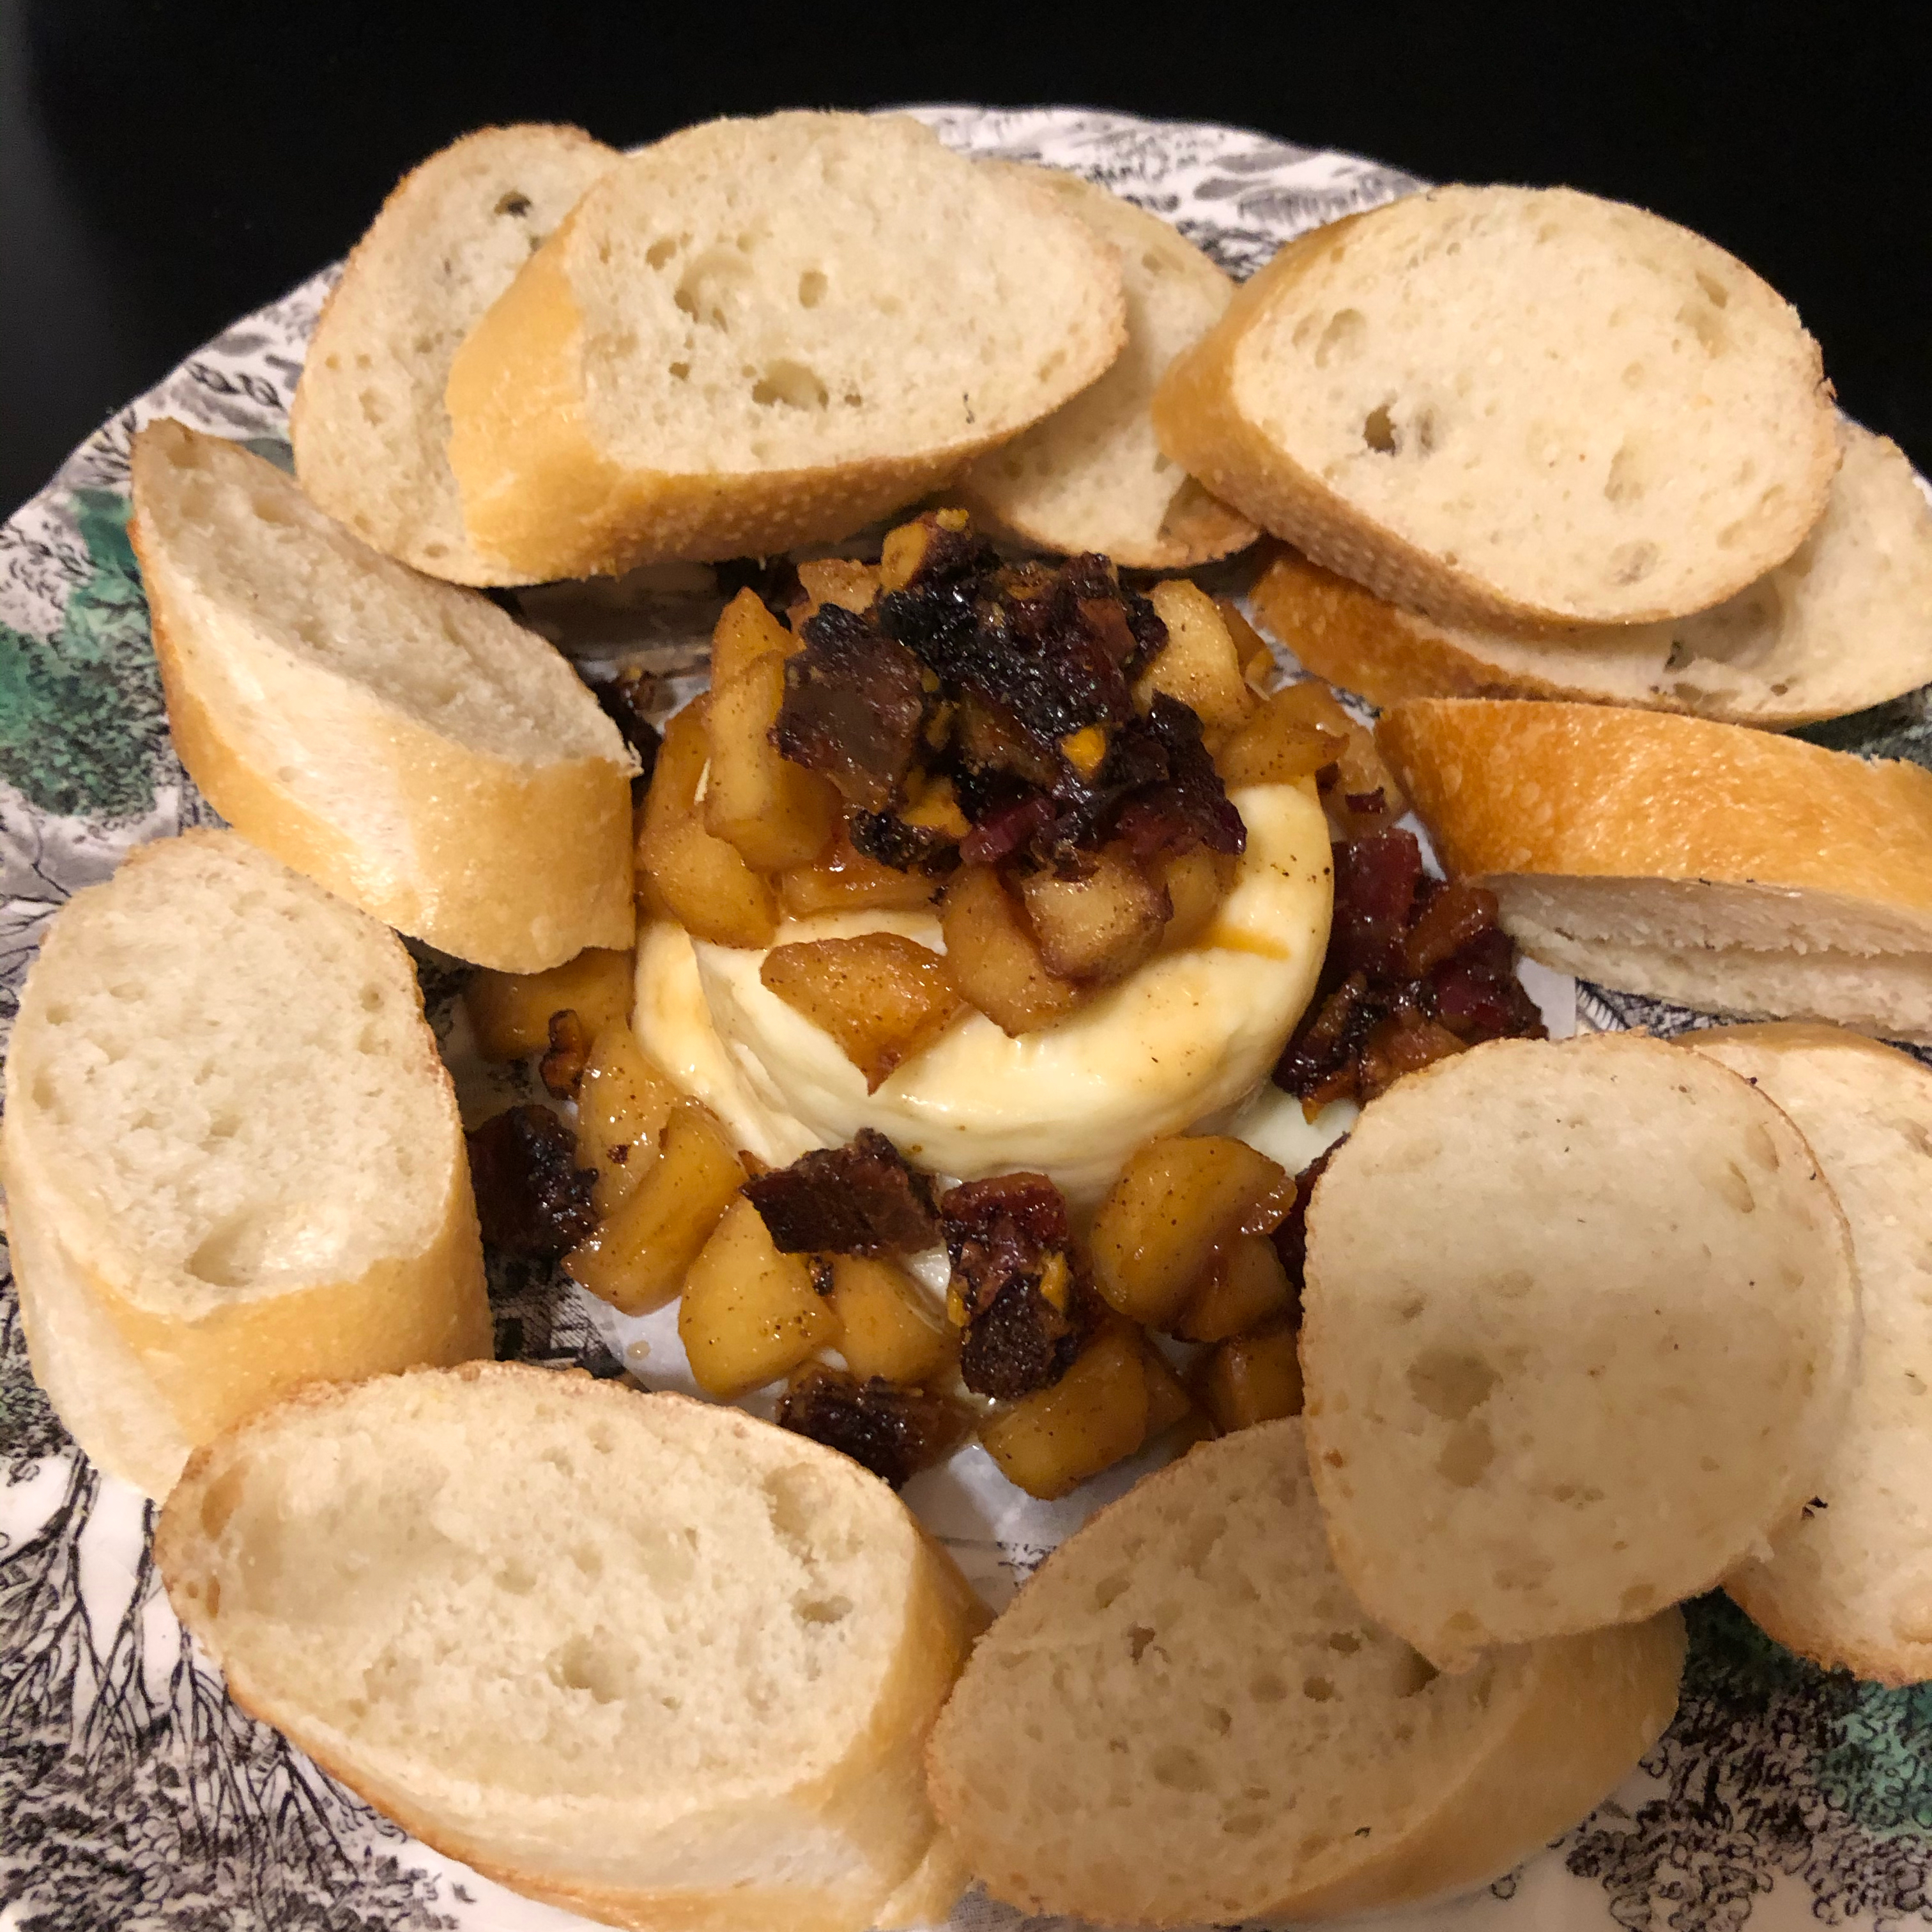 Baked Brie with Maple Caramelized Apples and Spiced Praline Bacon Kristina Keenan